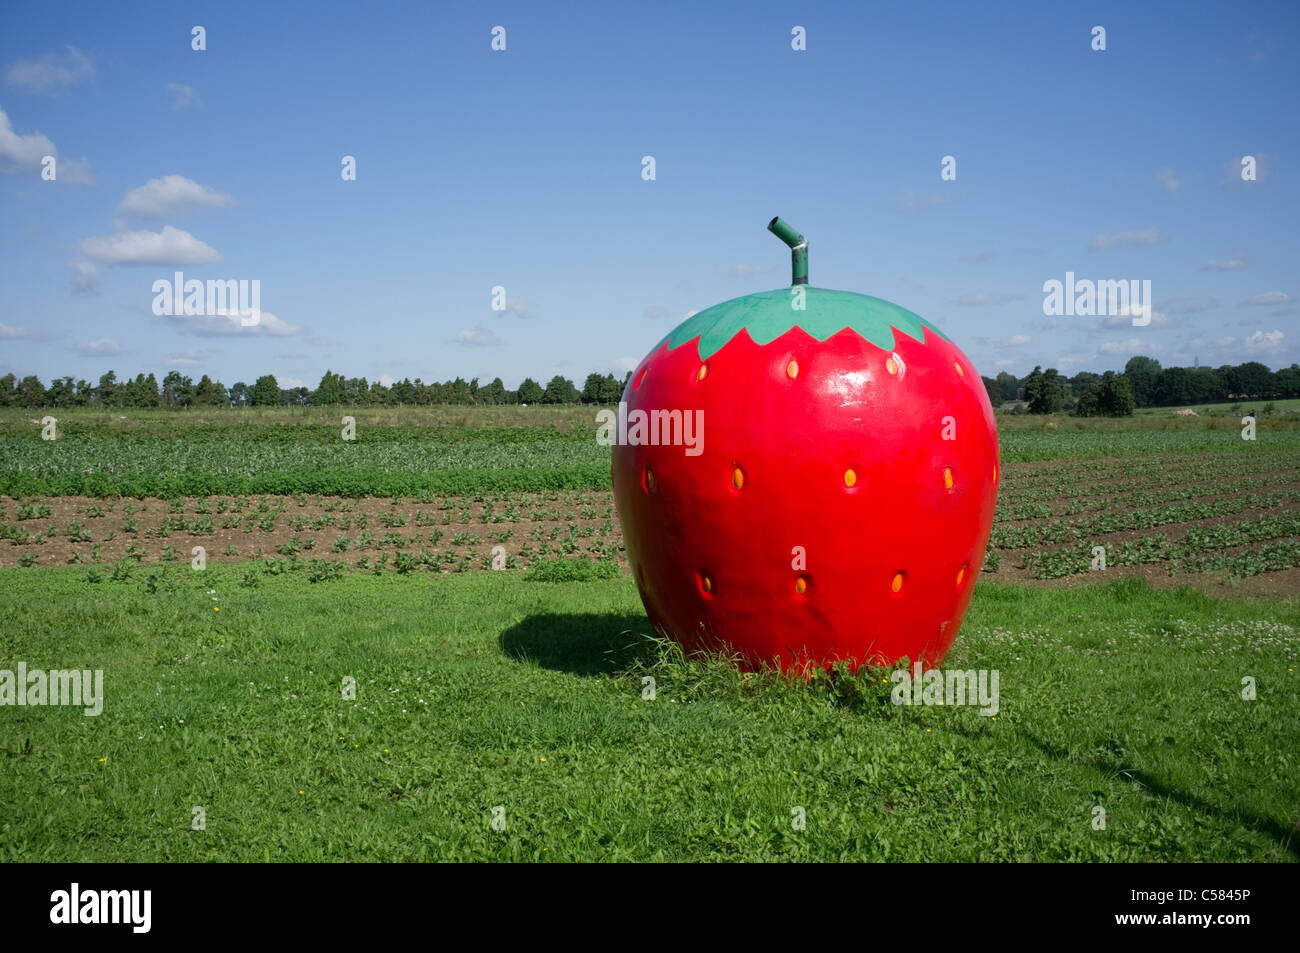 Large Strawberry advertising PicK Your Own at Grays Farm - 1 - Stock Image